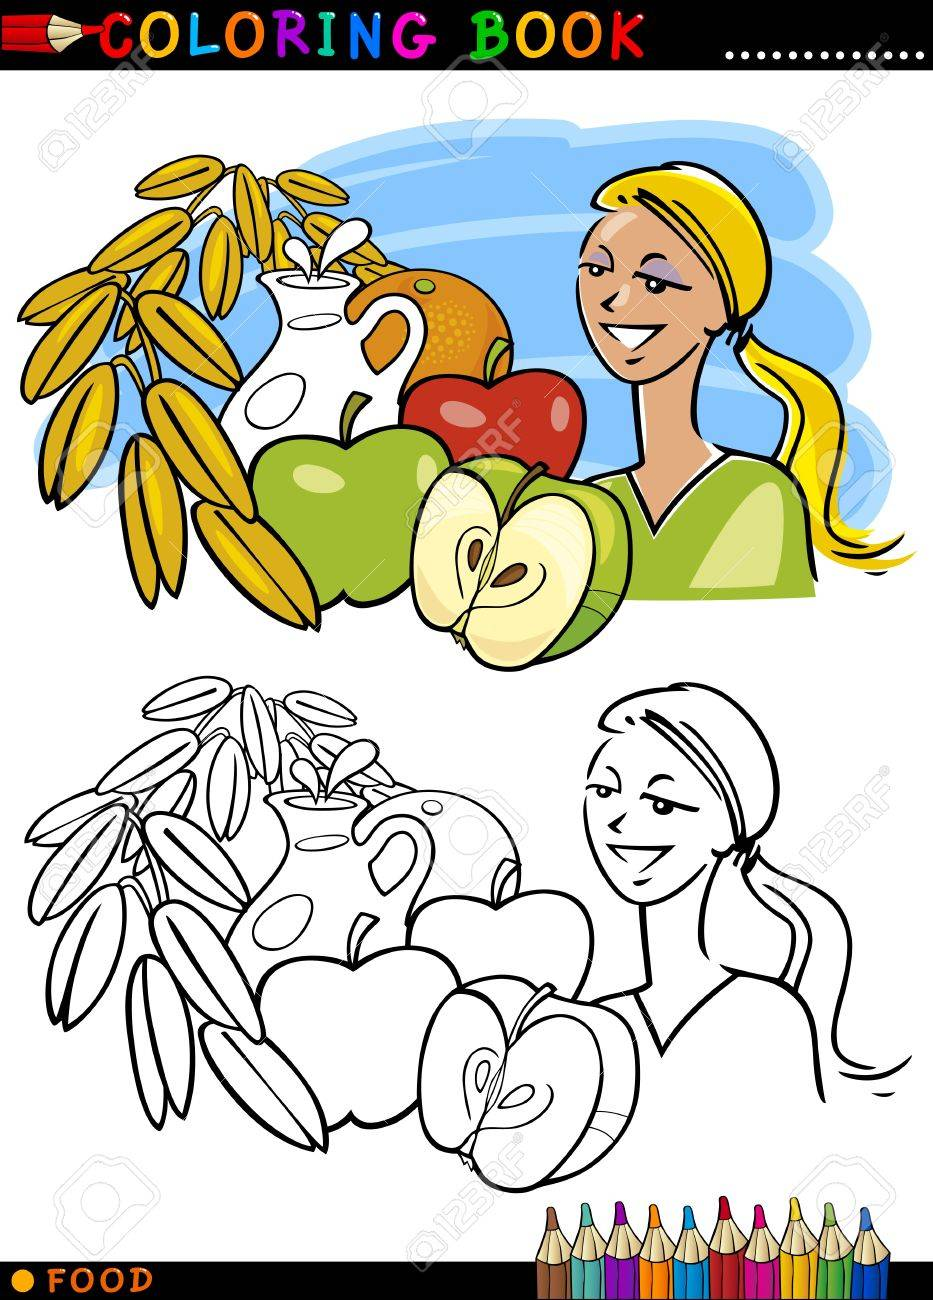 coloring book or page cartoon illustration of healthy breakfast